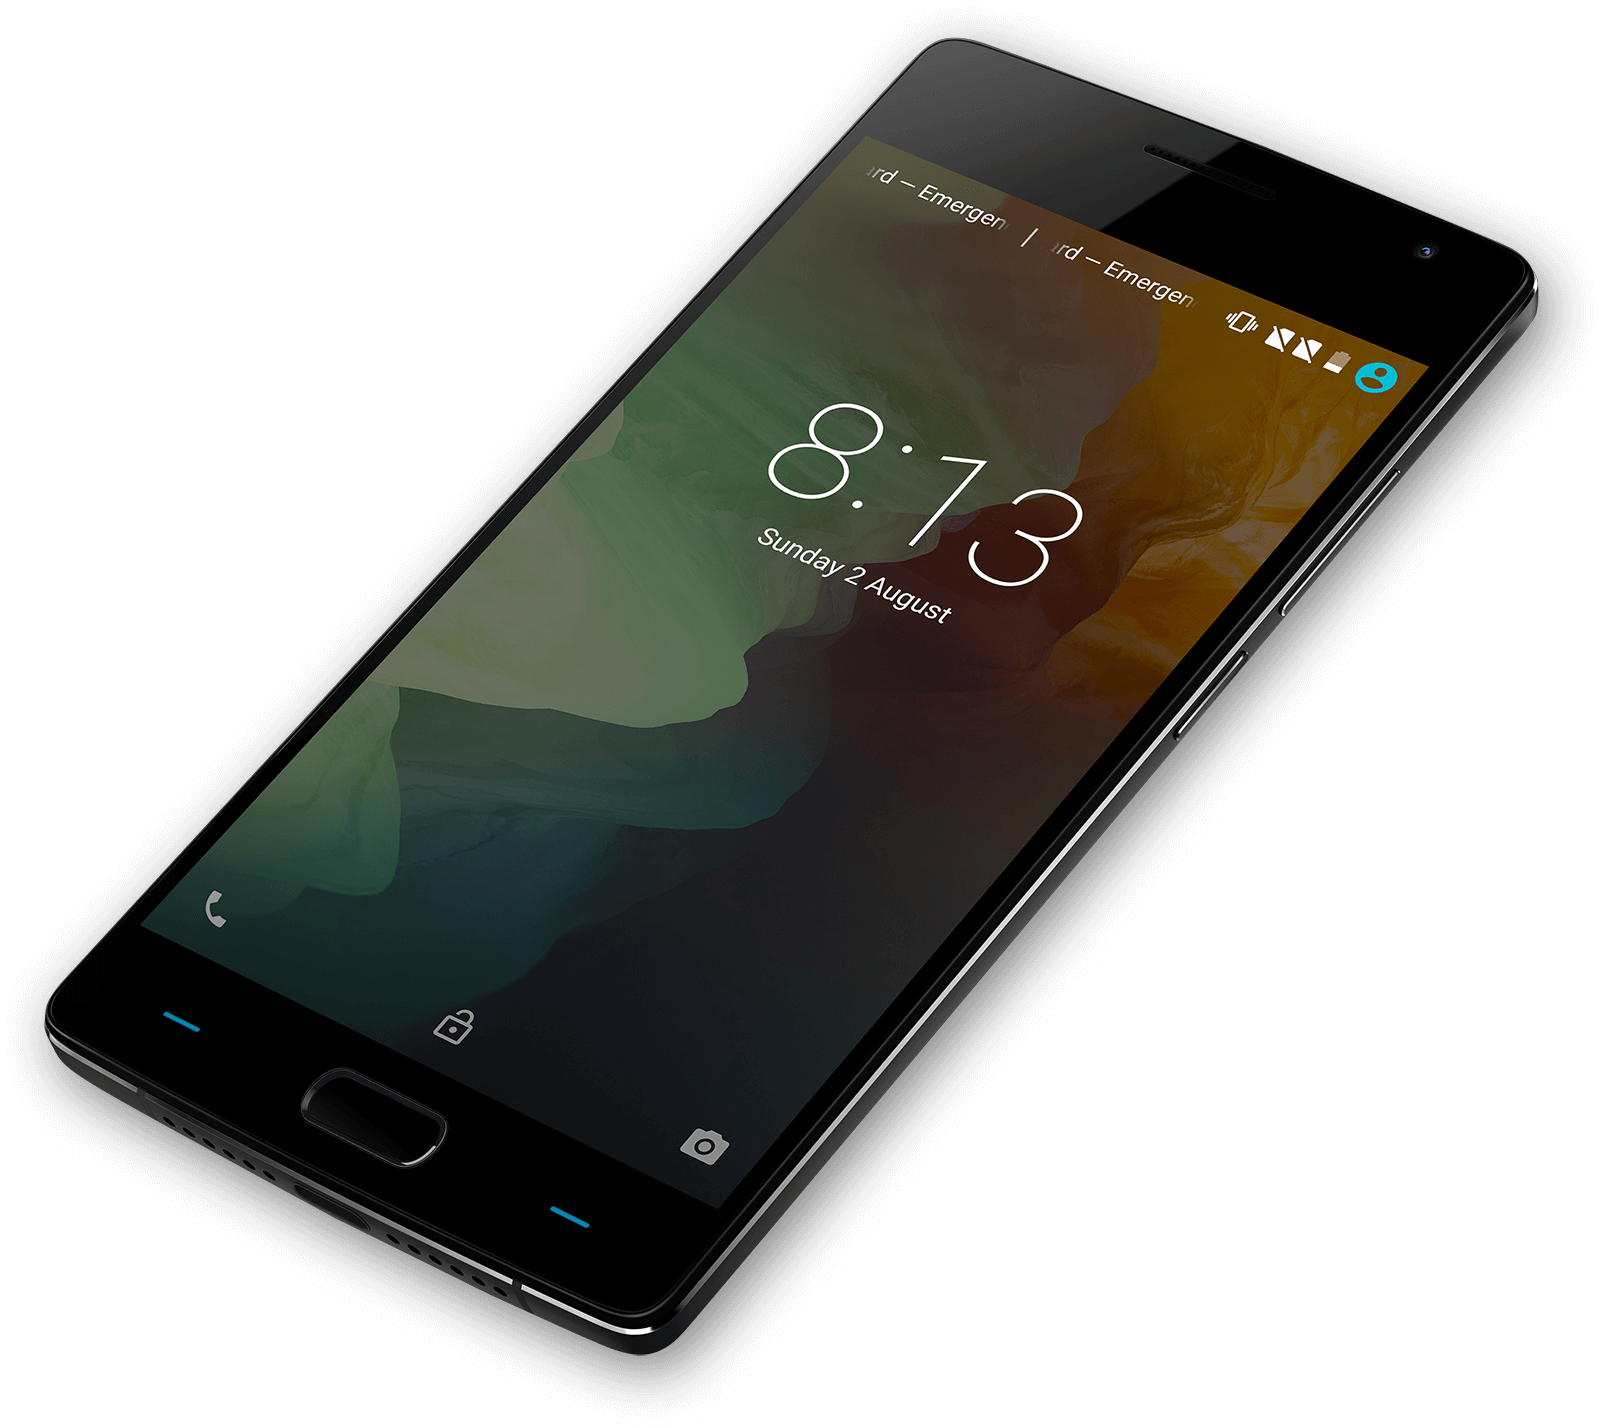 https://content.oneplus.net/skin/frontend/oneplus2015/default/images/feature/two/fingerprint-unlock-img.png